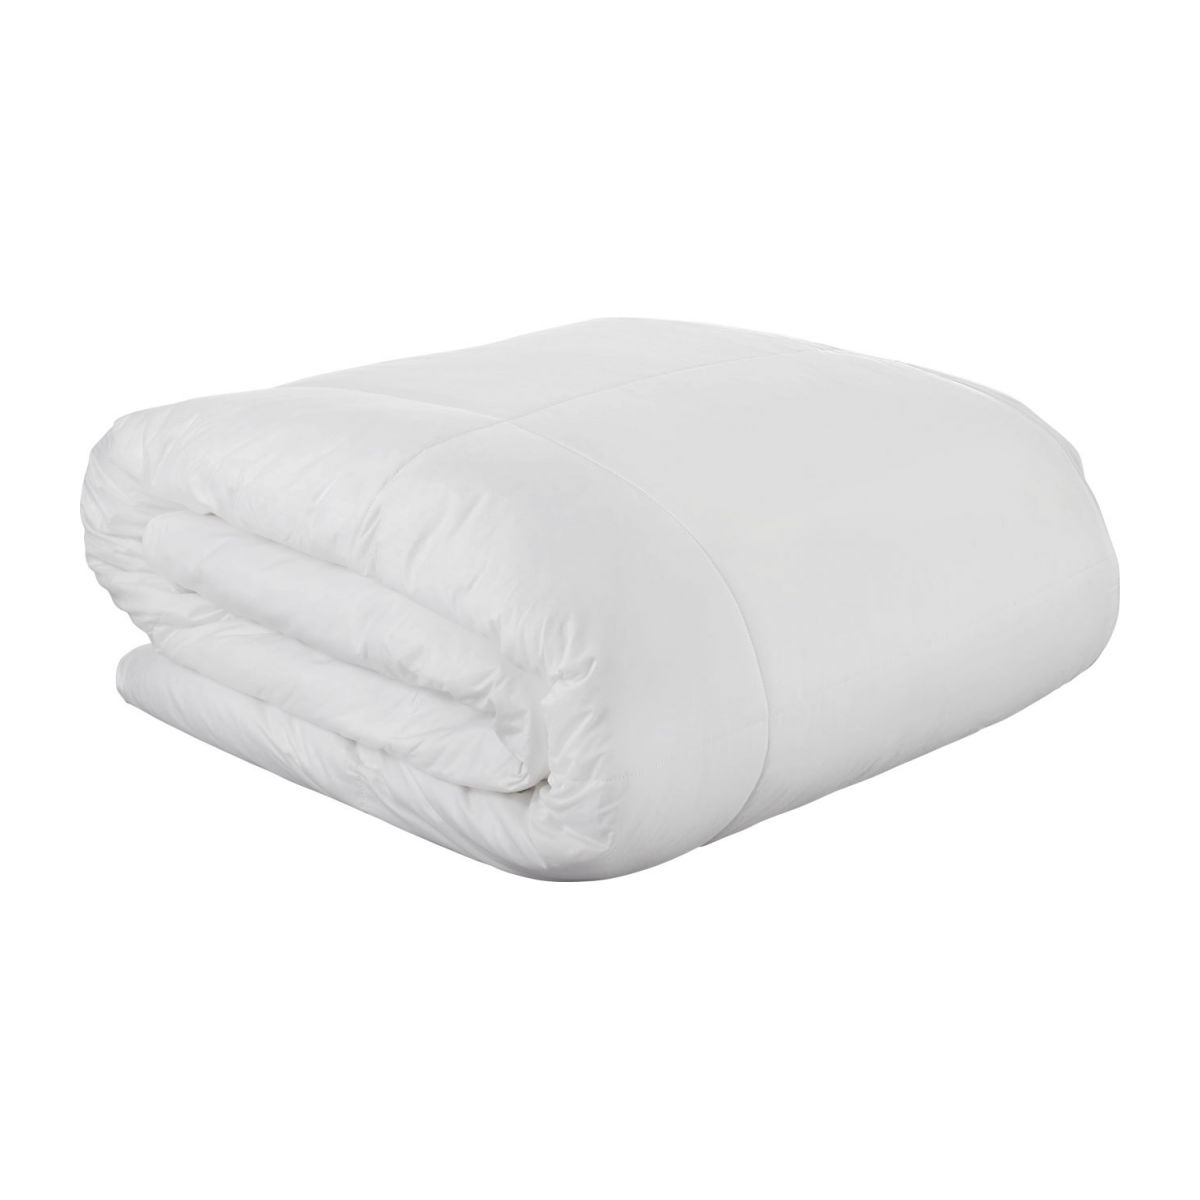 Couette 200g M2 Canard Couette 240x220cm 200g Blanche